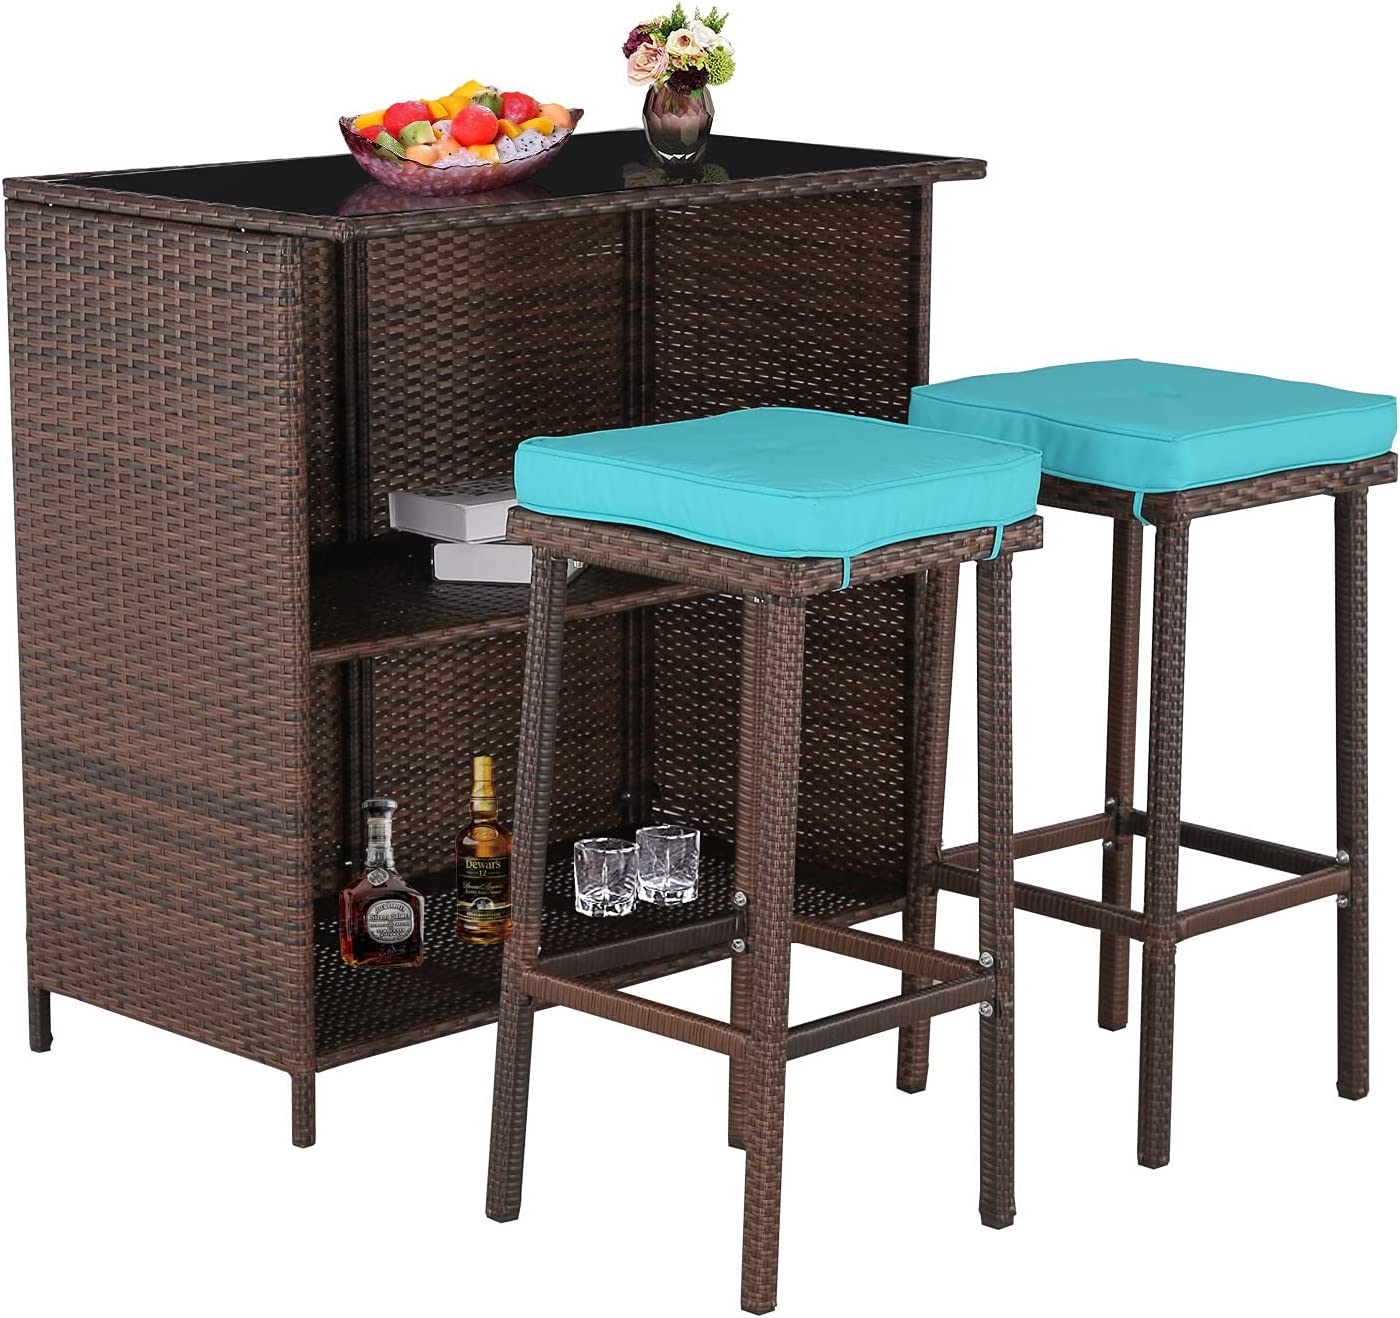 Do4U 3 Pieces Patio Bar All-Weather Set Super Max 47% OFF sale period limited Wicker Table Outdoor